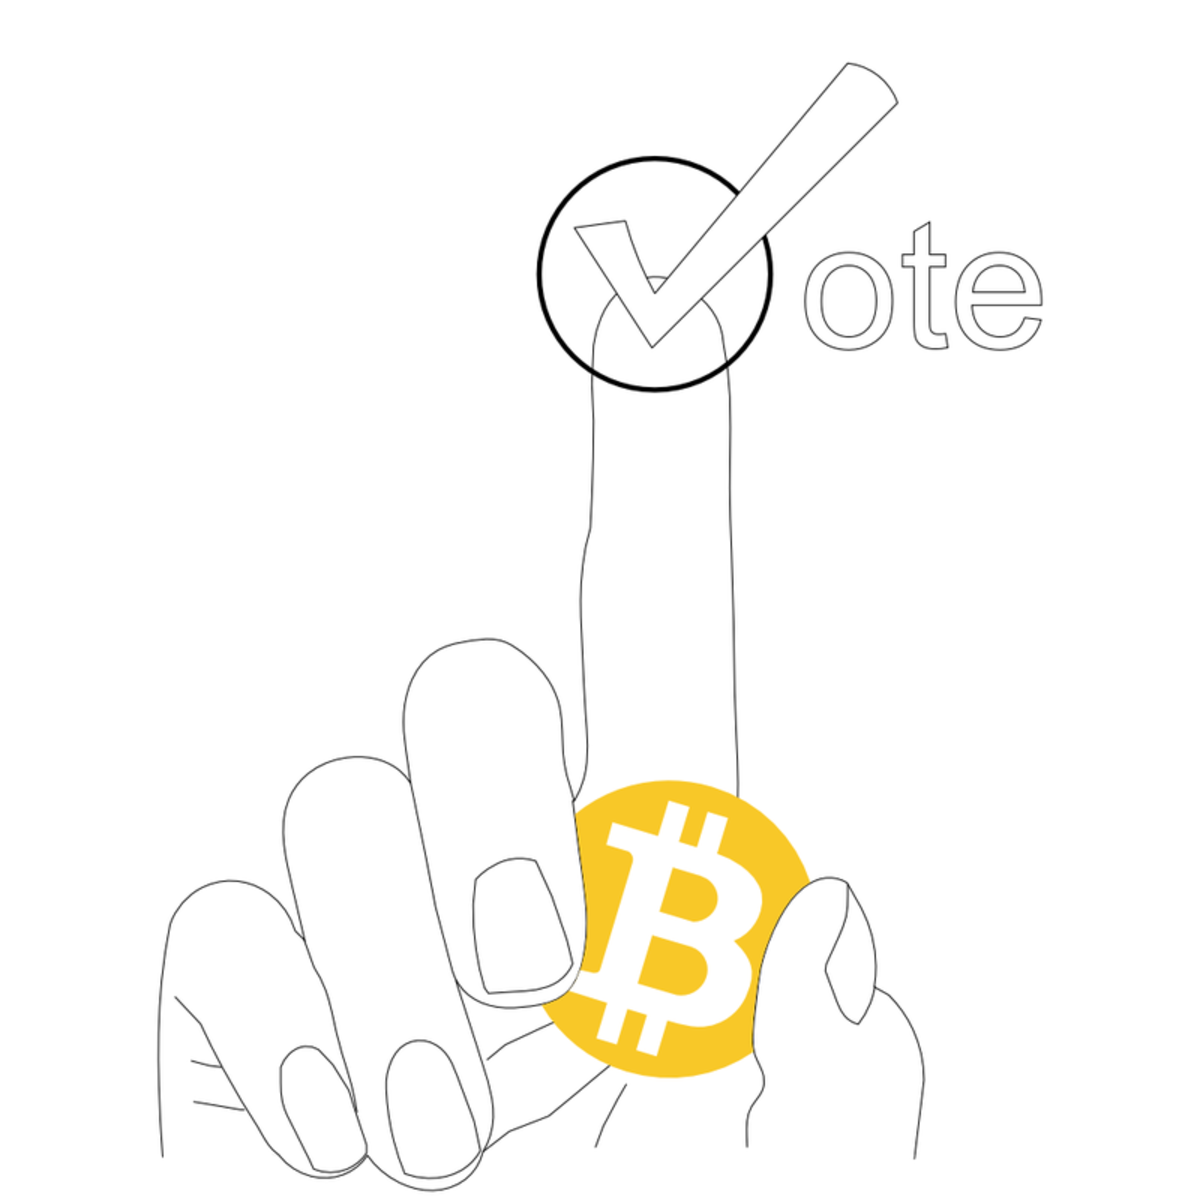 Adoption & community - Updated Bitcoin Foundation Board of Directors Election